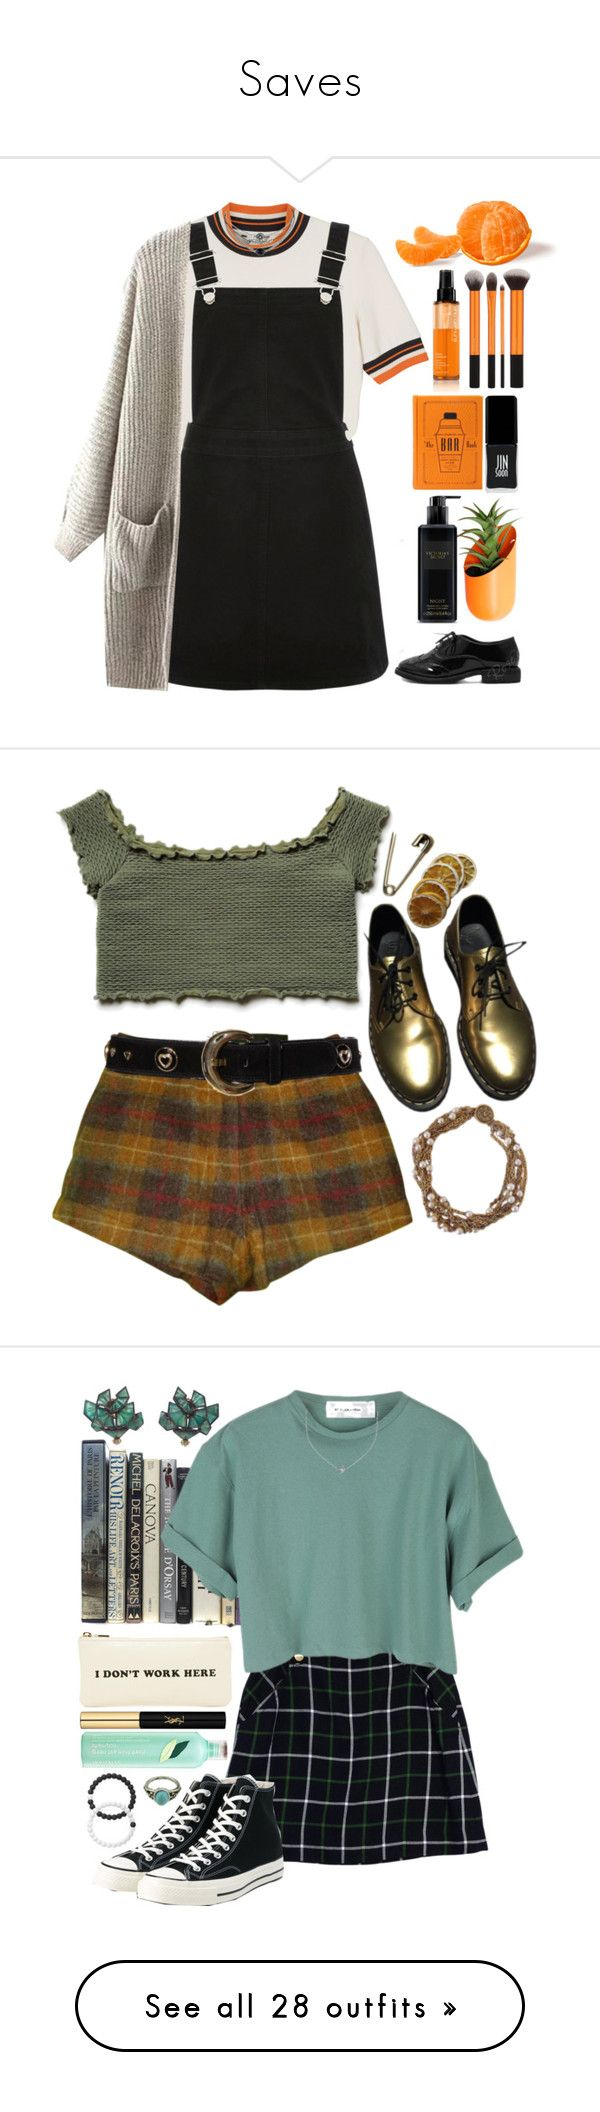 """Saves"" by egocentric-oblivion ❤ liked on Polyvore featuring Monki, Oasis, Wallter, shu uemura, JINsoon, Victoria's Secret, Madame A Paris, Free People, ESCADA and Dr. Martens"